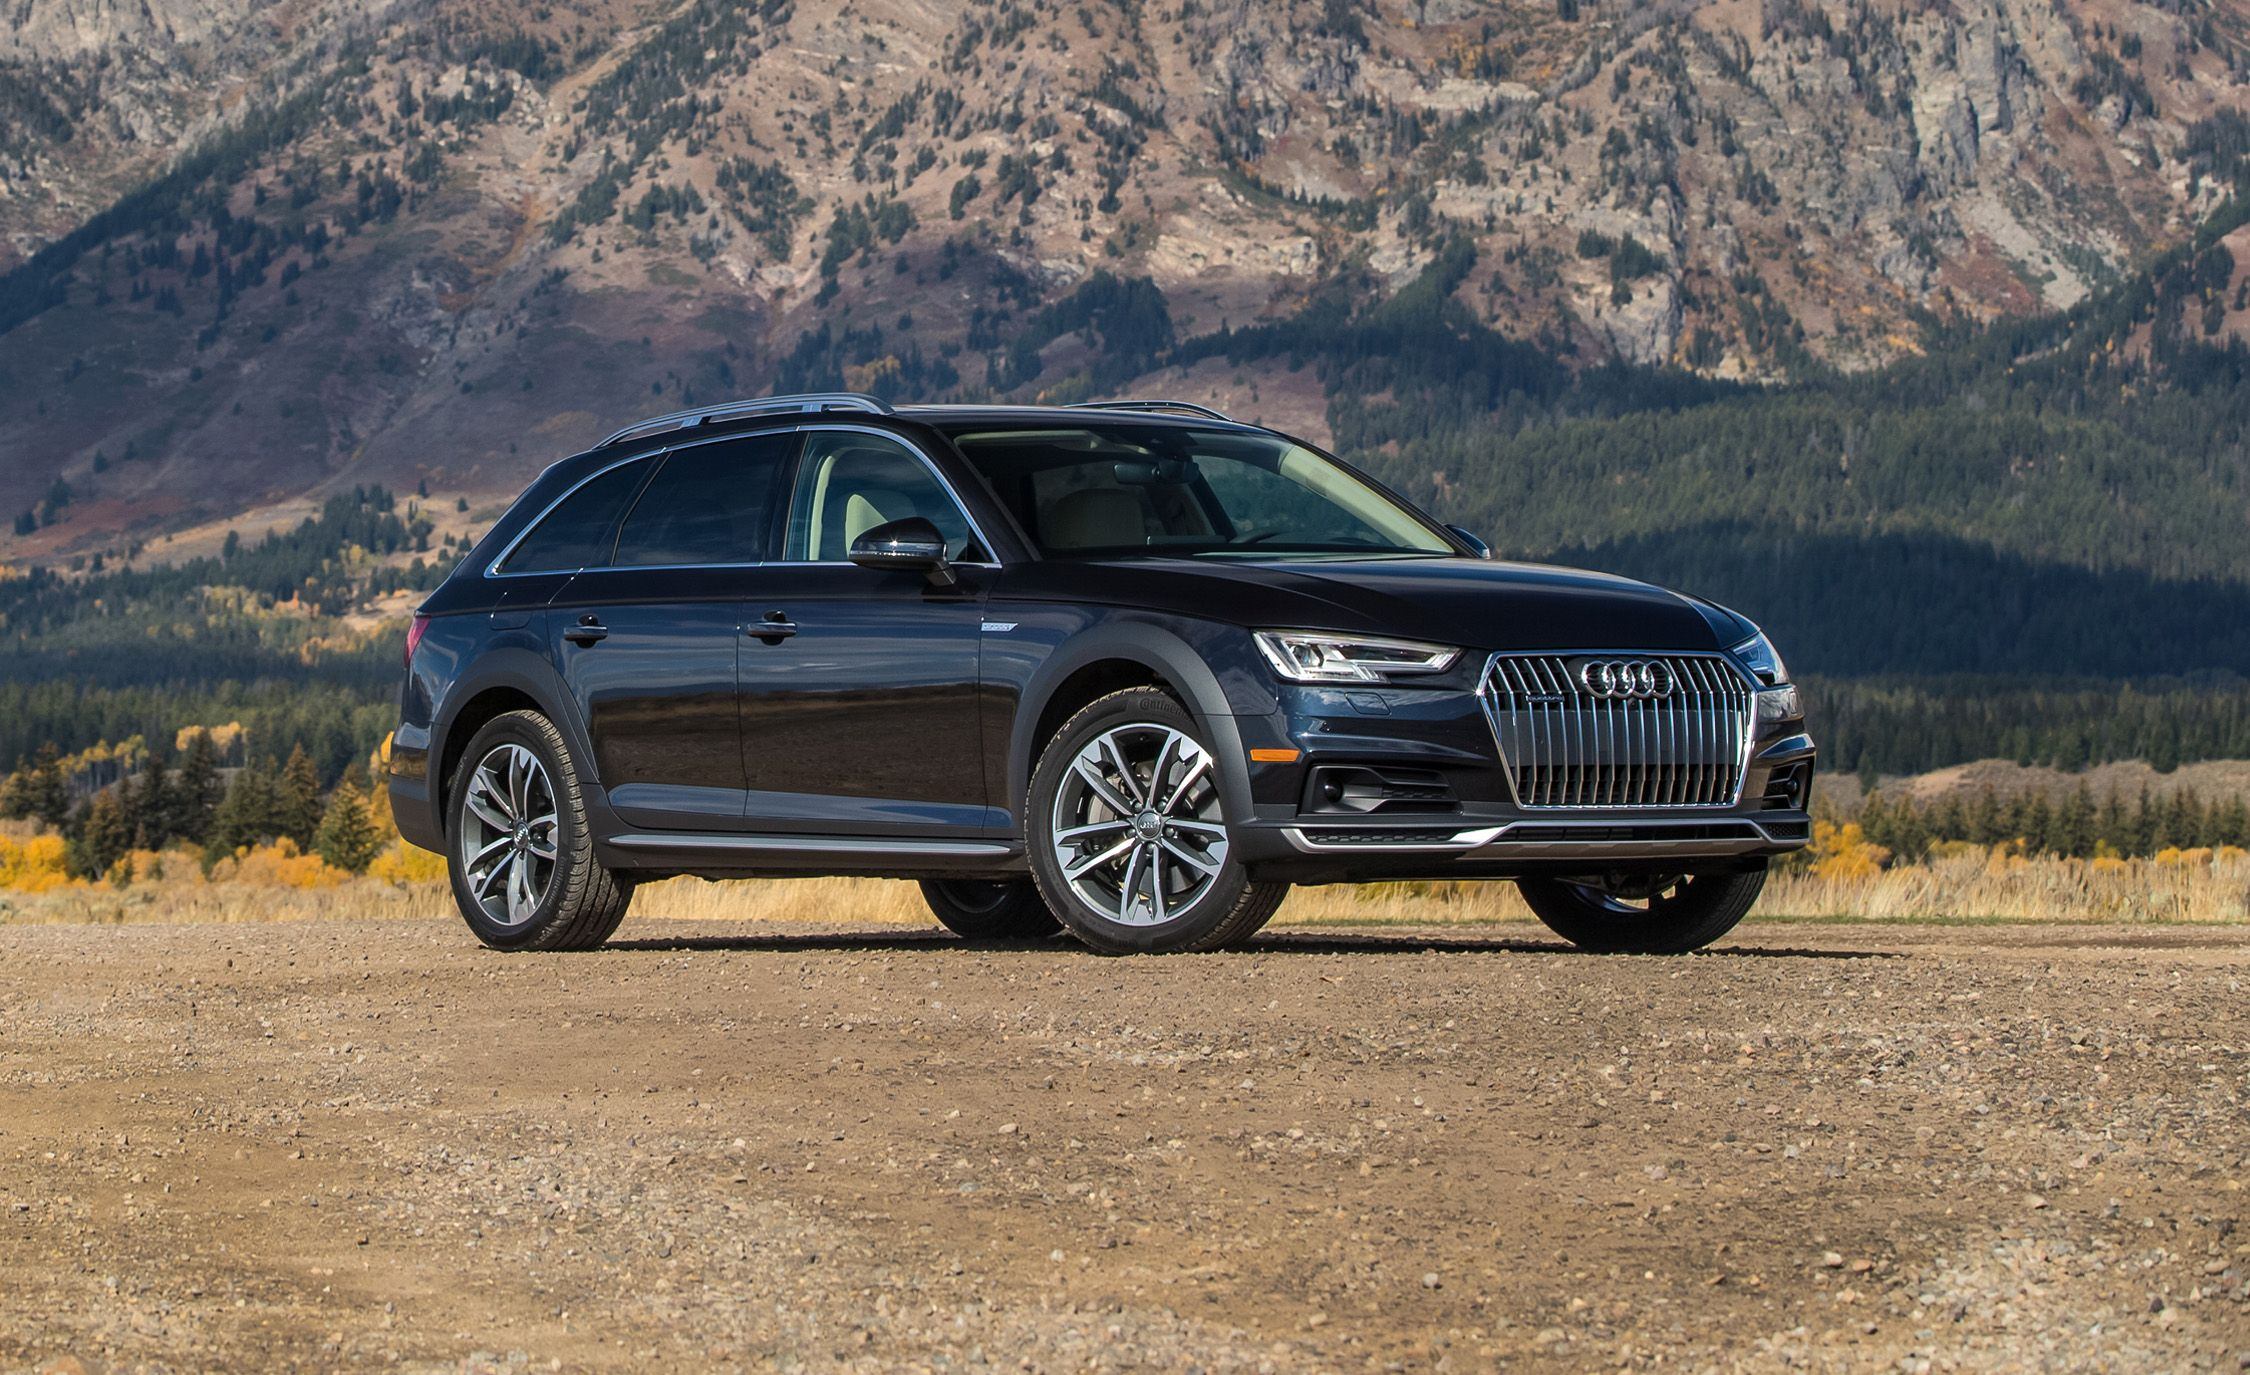 Audi A4 Allroad Quattro Reviews | Audi A4 Allroad Quattro Price, Photos,  and Specs | Car and Driver